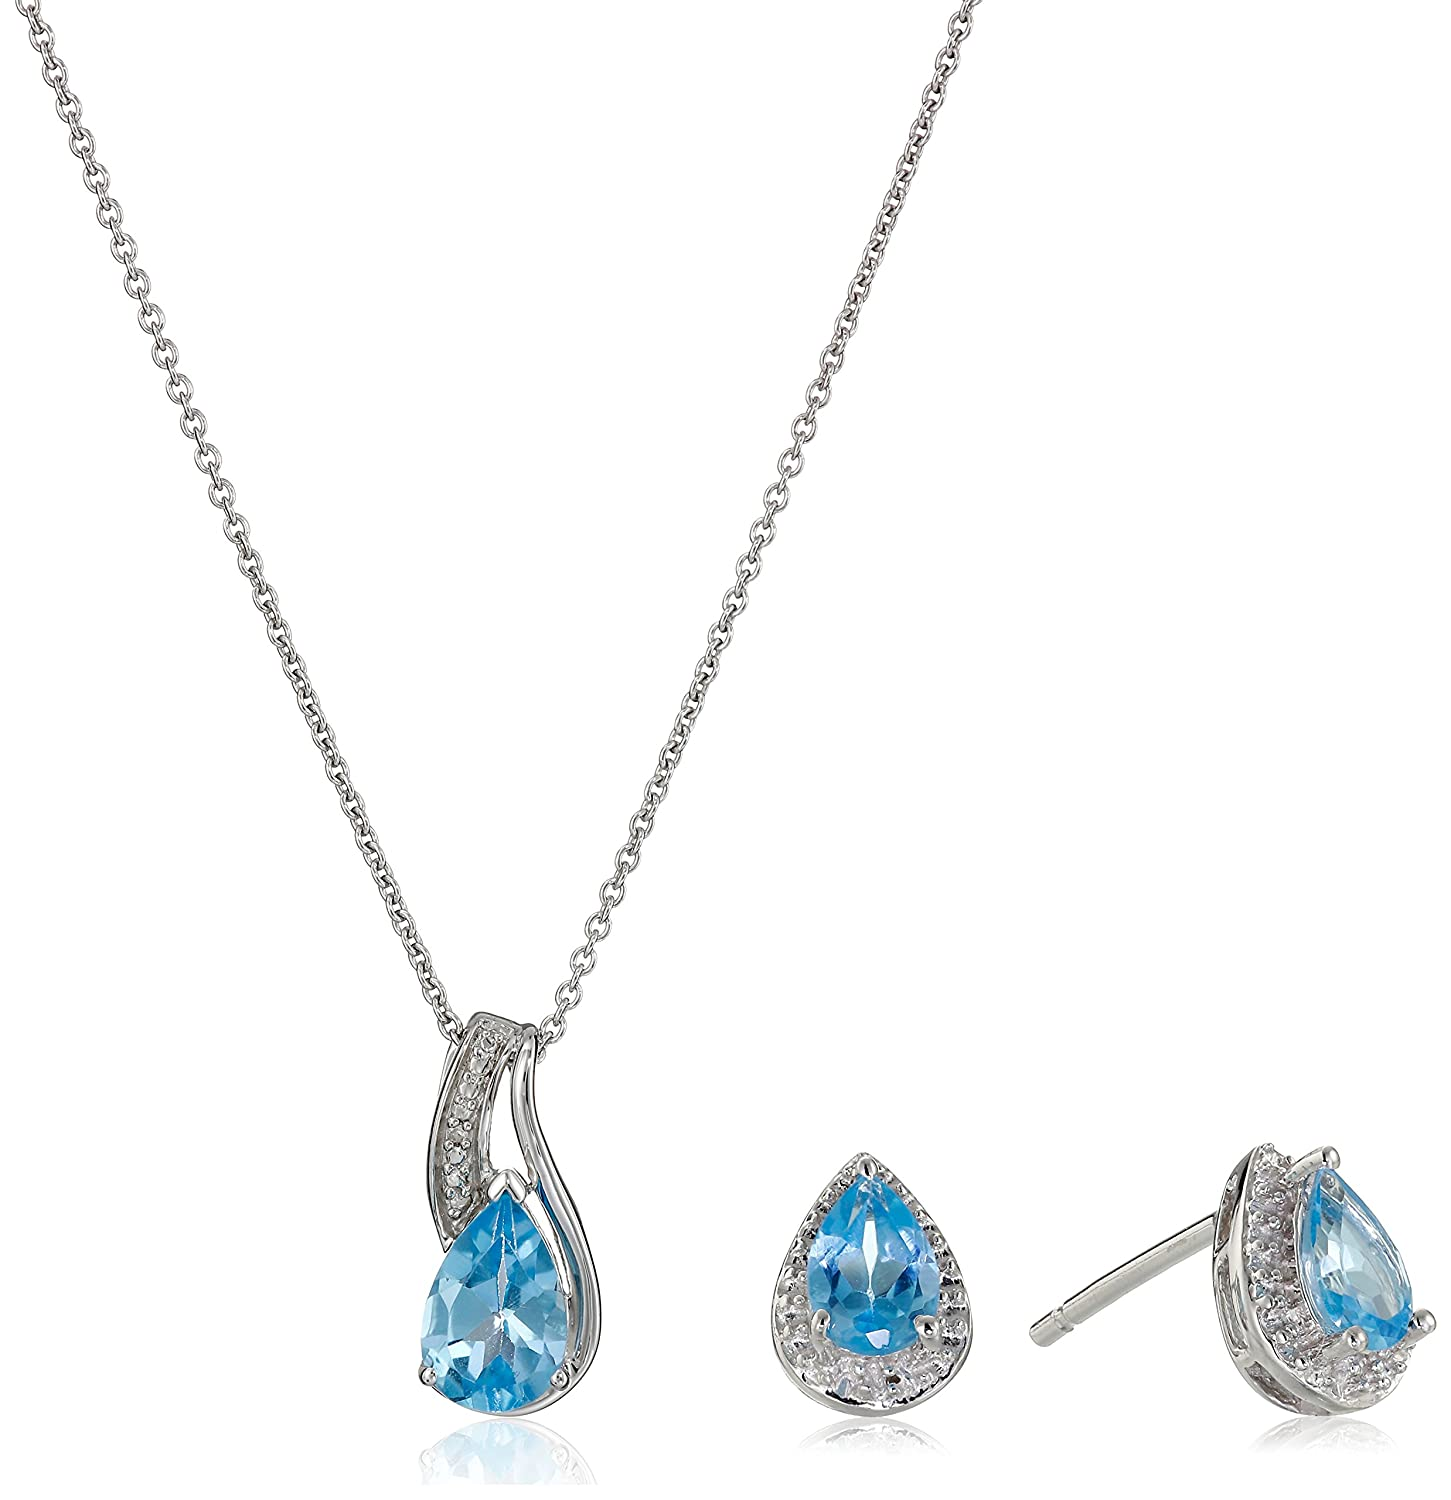 pendants classic diamond pear graff pendant collections shape